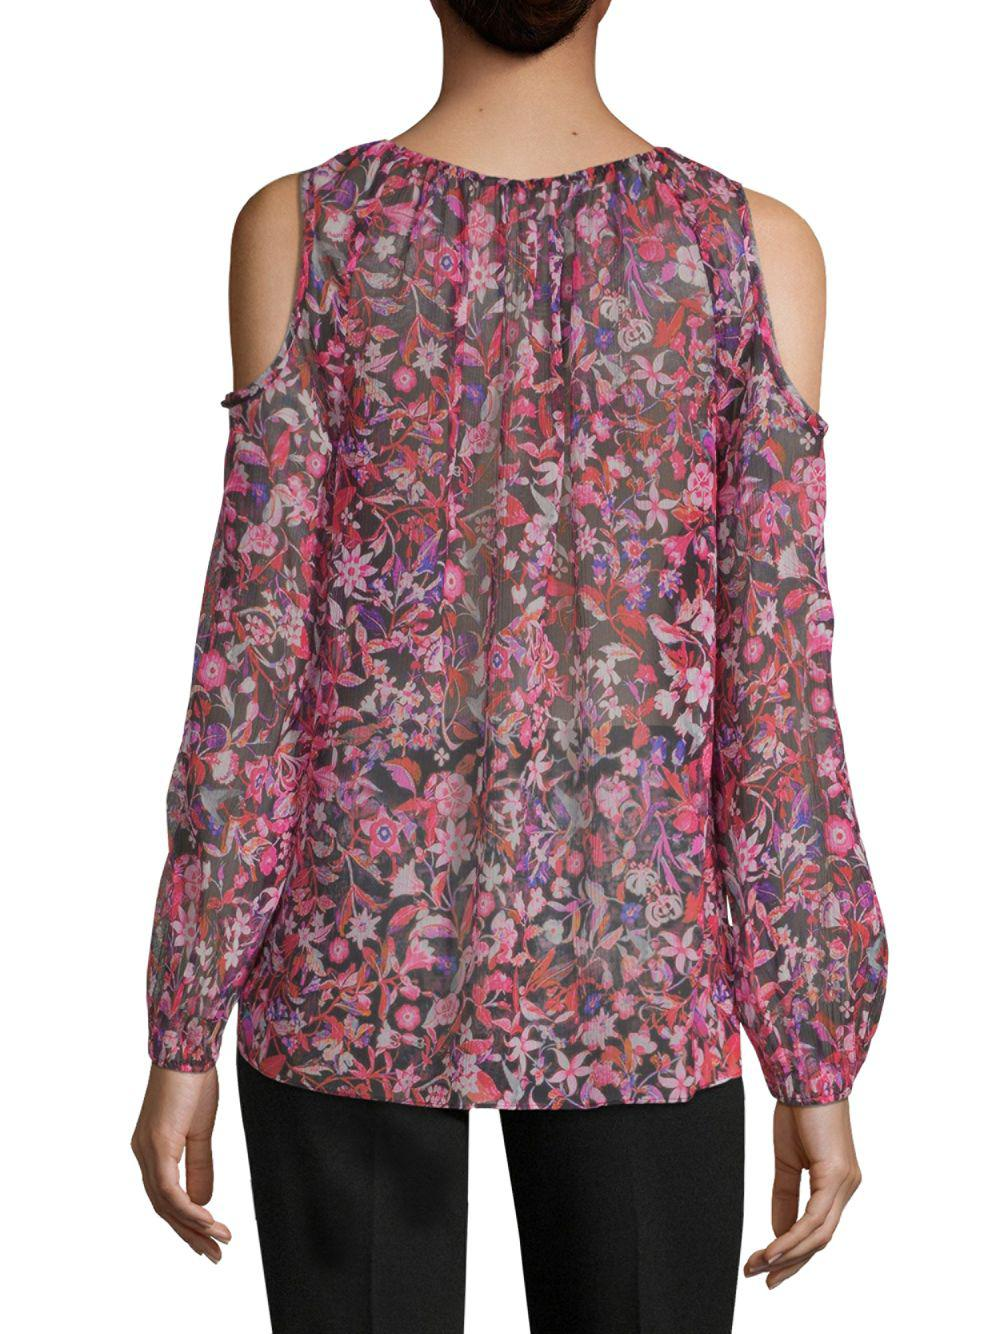 53f267ad1649ed Lyst - Elie Tahari Cathy Cold-shoulder Silk Blouse - Save 41.52542372881356%